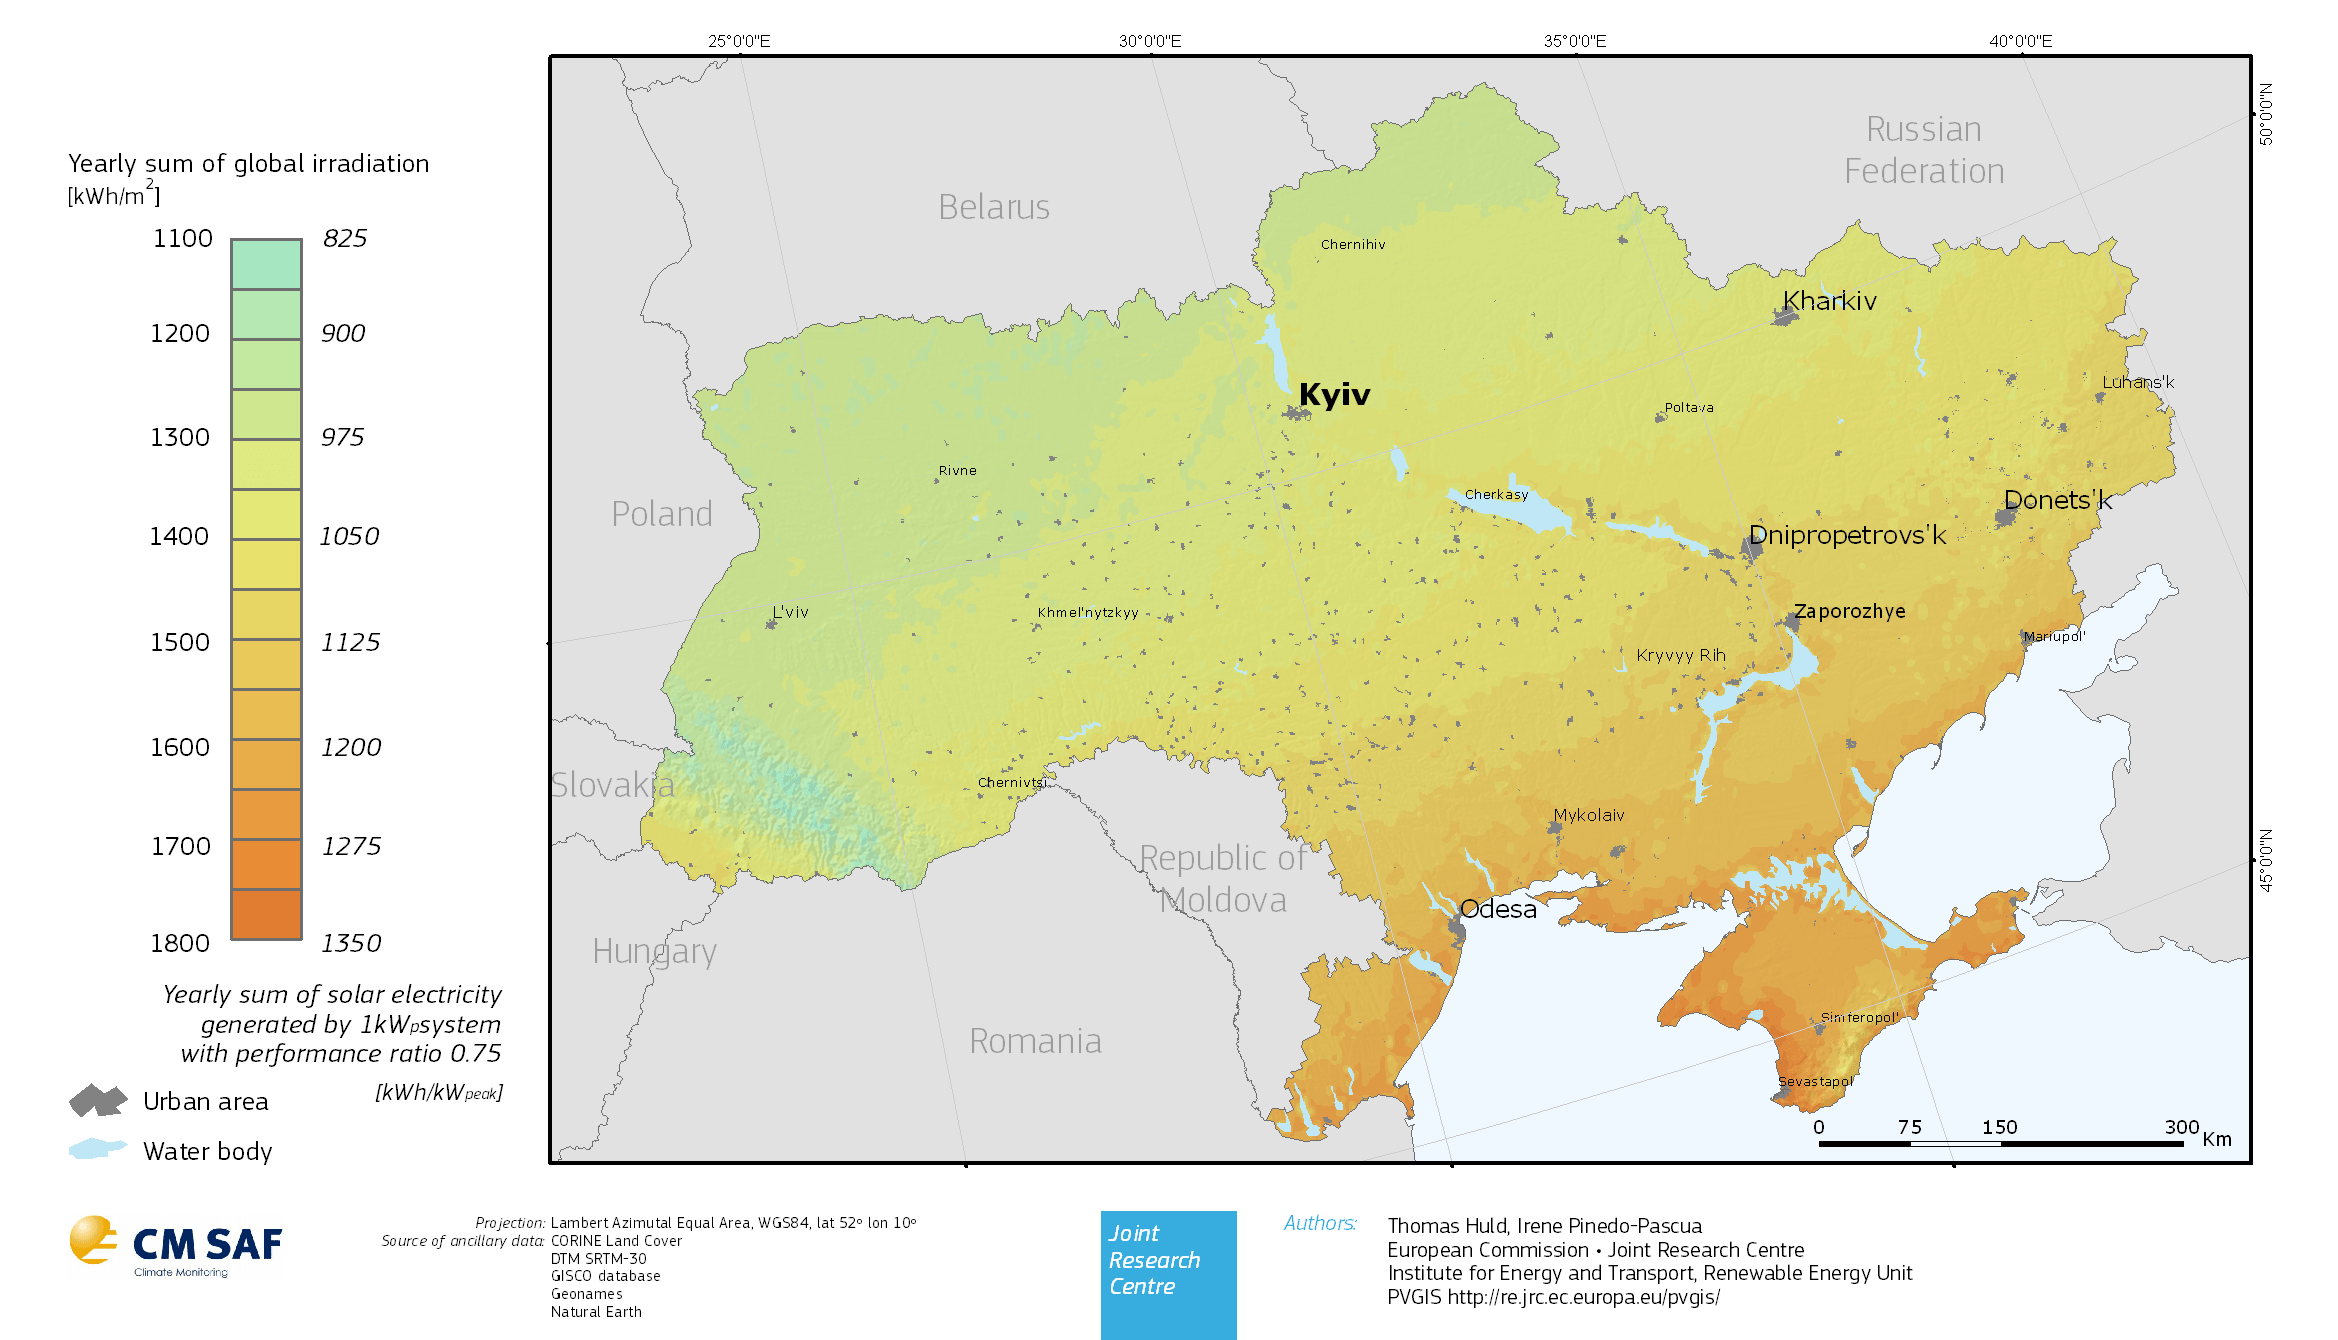 Fig. 3. Insolation and solar energy potential in Ukraine. Source: Renewable energy sector: Unlocking sustainable energy potential, National Investment Council of Ukraine, 2018.